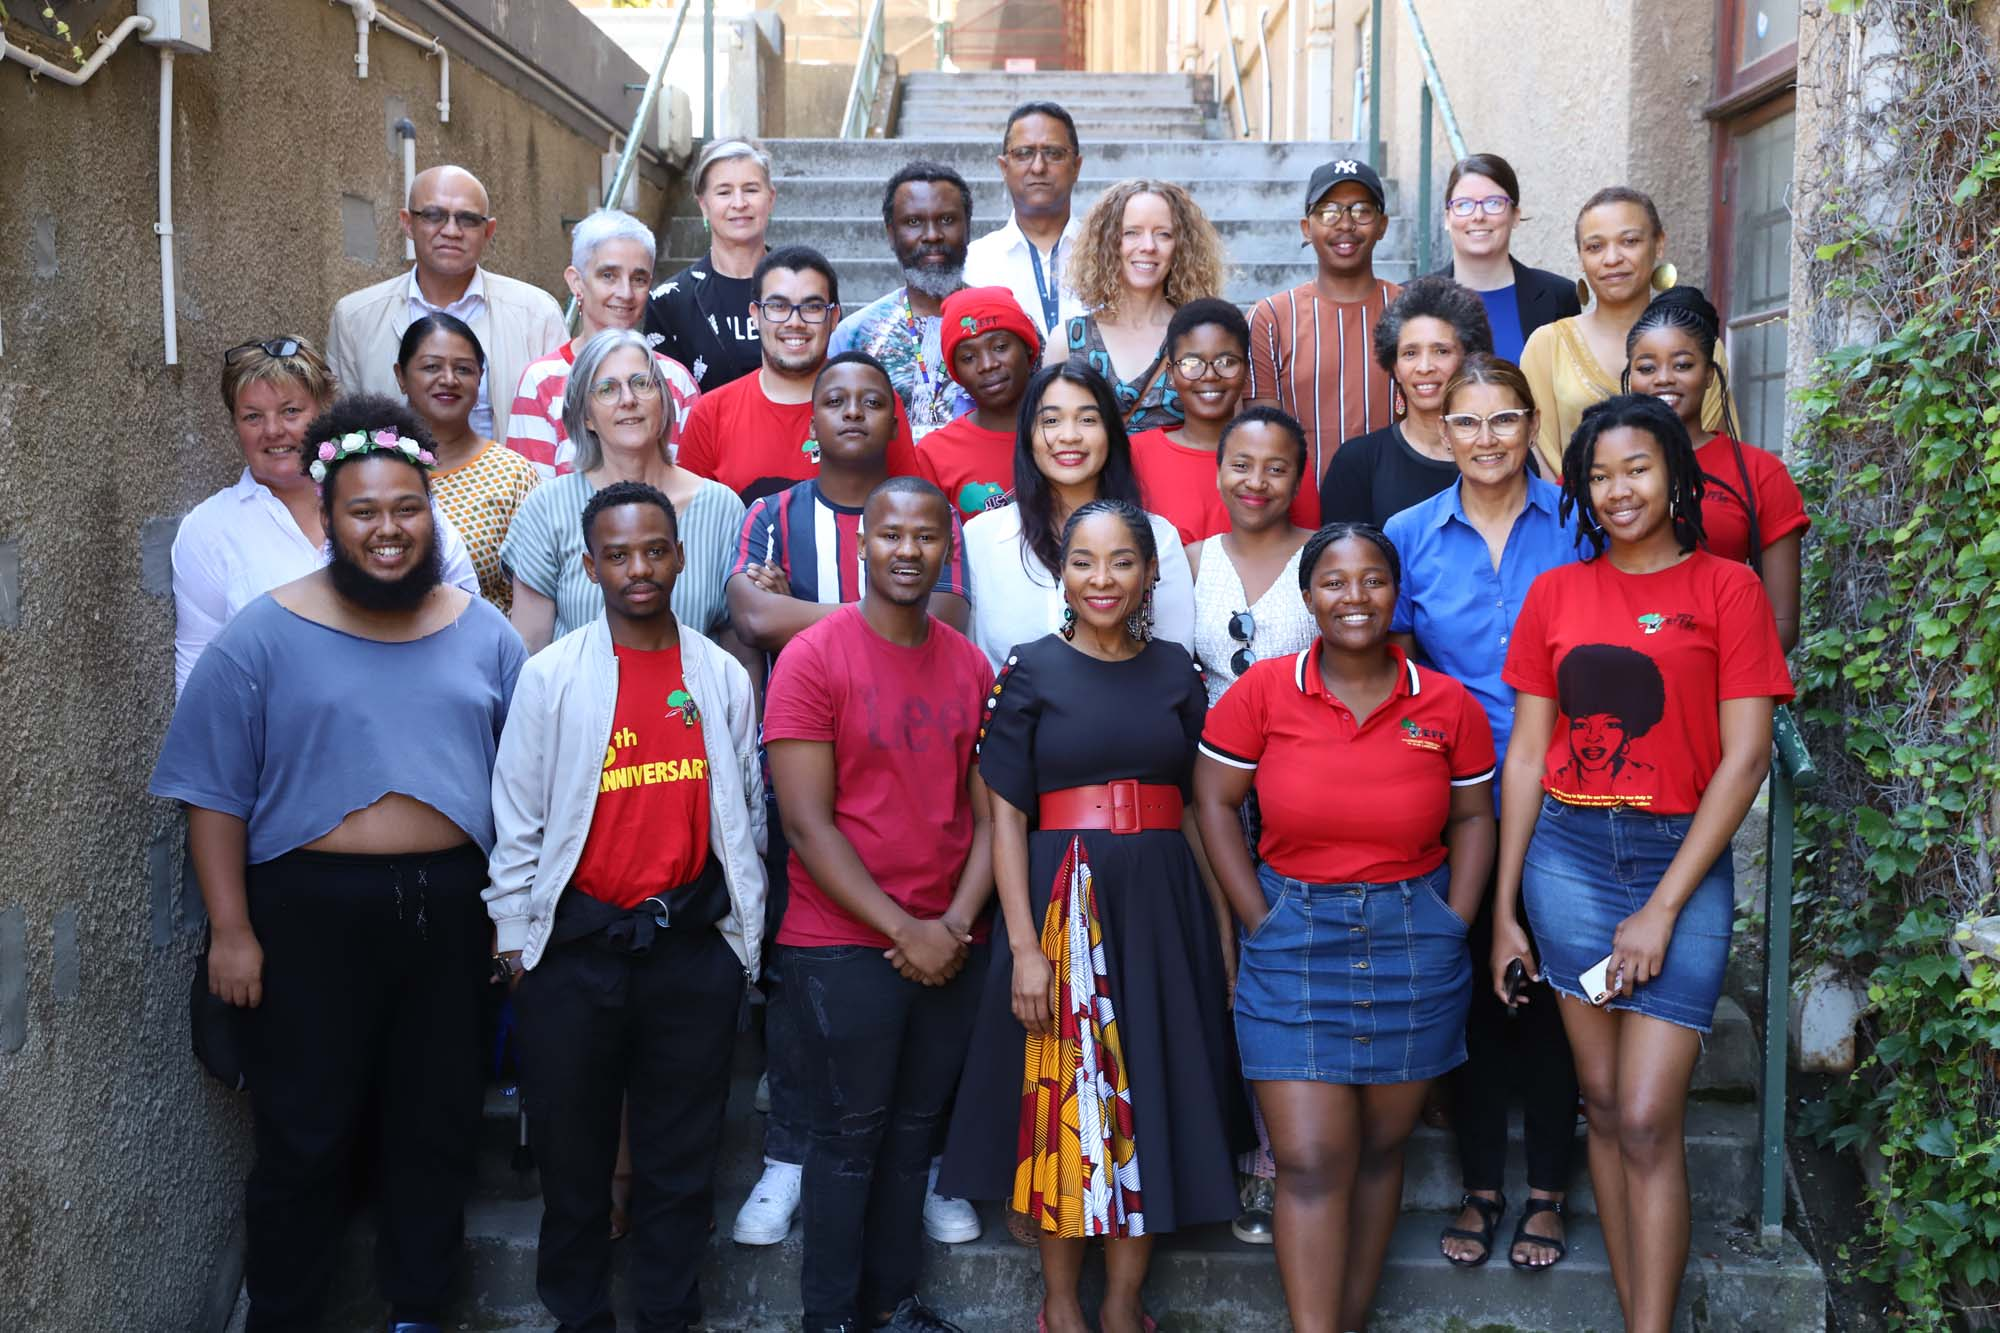 UCT's Students' Representative Council 2019/20 with members of the UCT leadership.